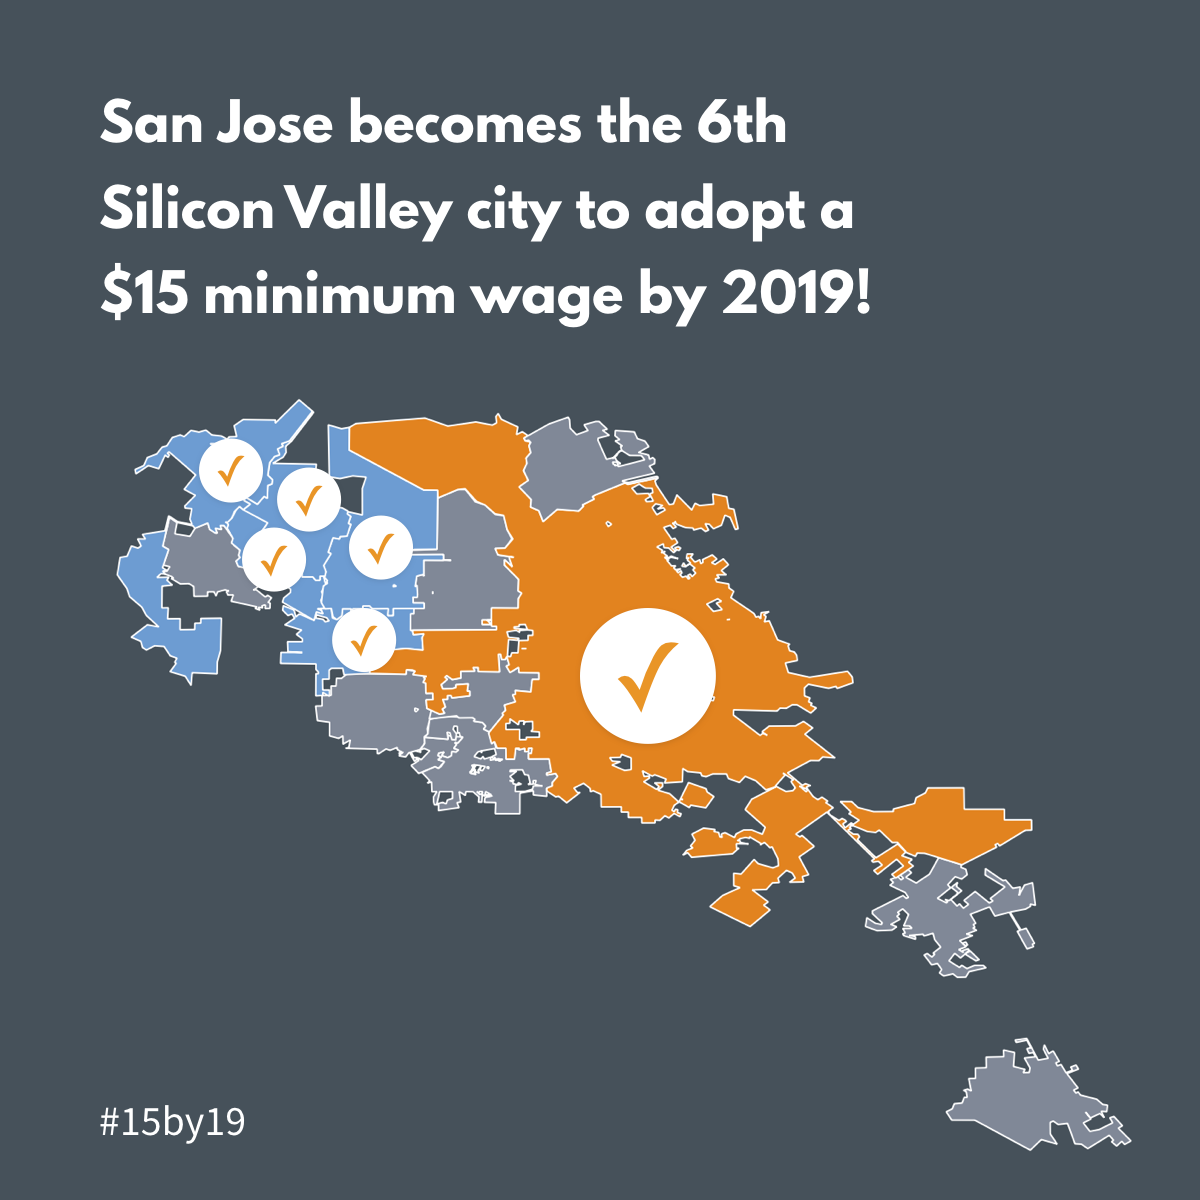 San Jose becomes the 6th Silicon Valley city to adopt a $15 minimum wage by 2019!